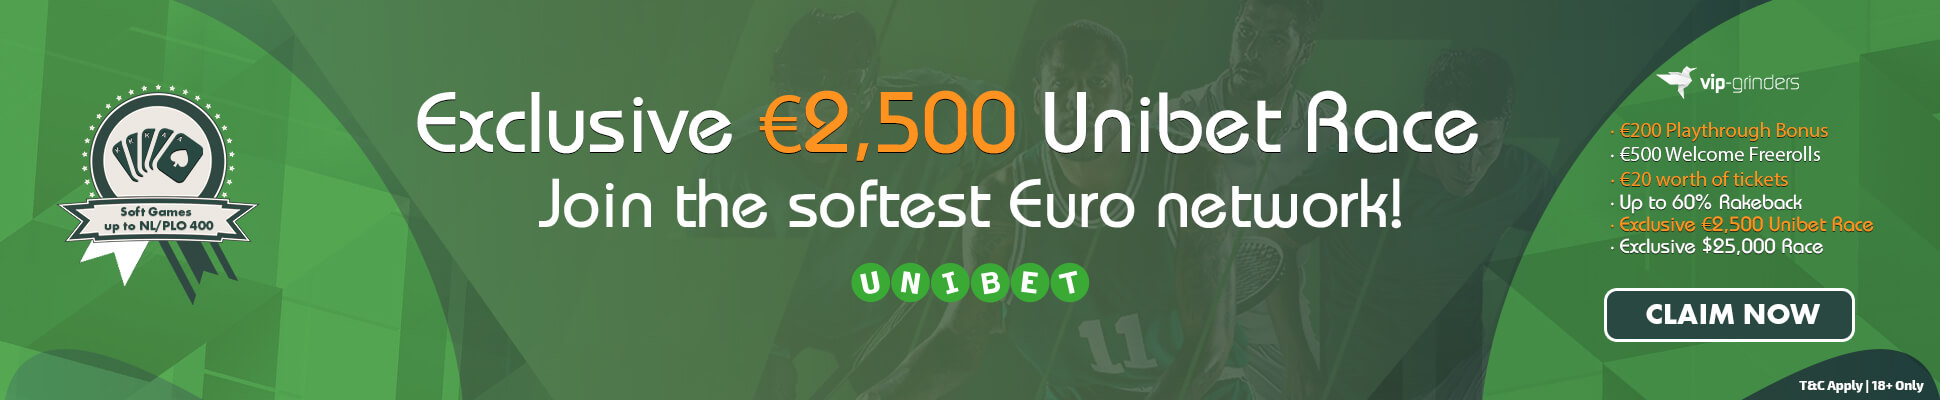 UNIBET-SLider-September